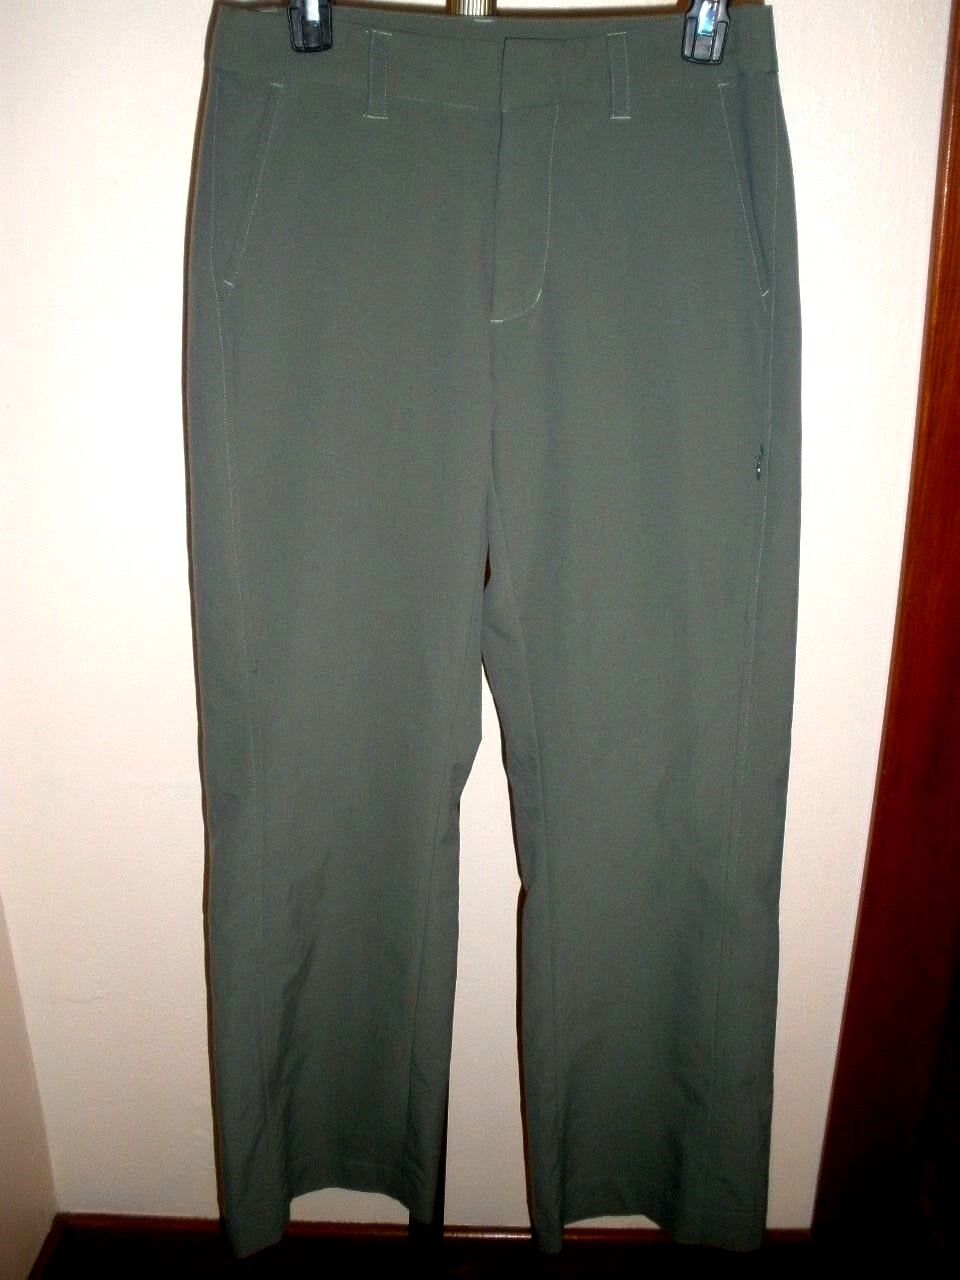 WOMEN'S PATAGONIA POLY NYLON CASUAL TRAVEL PANTS SZ 6 Dark Olive, Mint Cond